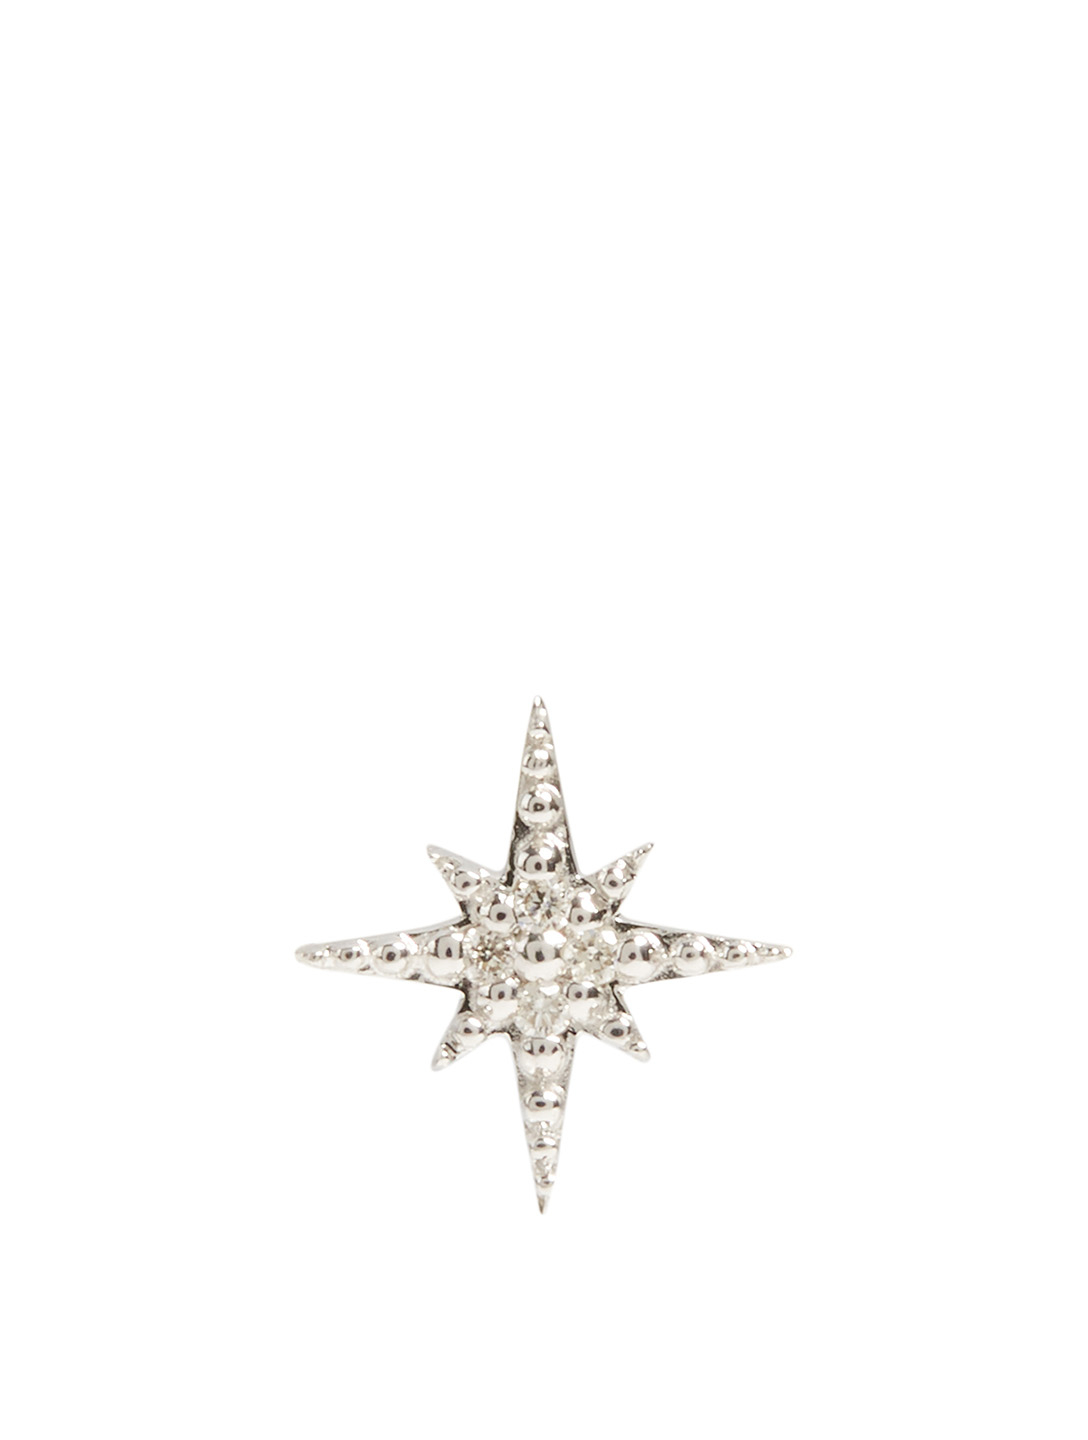 SYDNEY EVAN 14K White Gold Mini Starburst Earring With Diamonds Women's Metallic